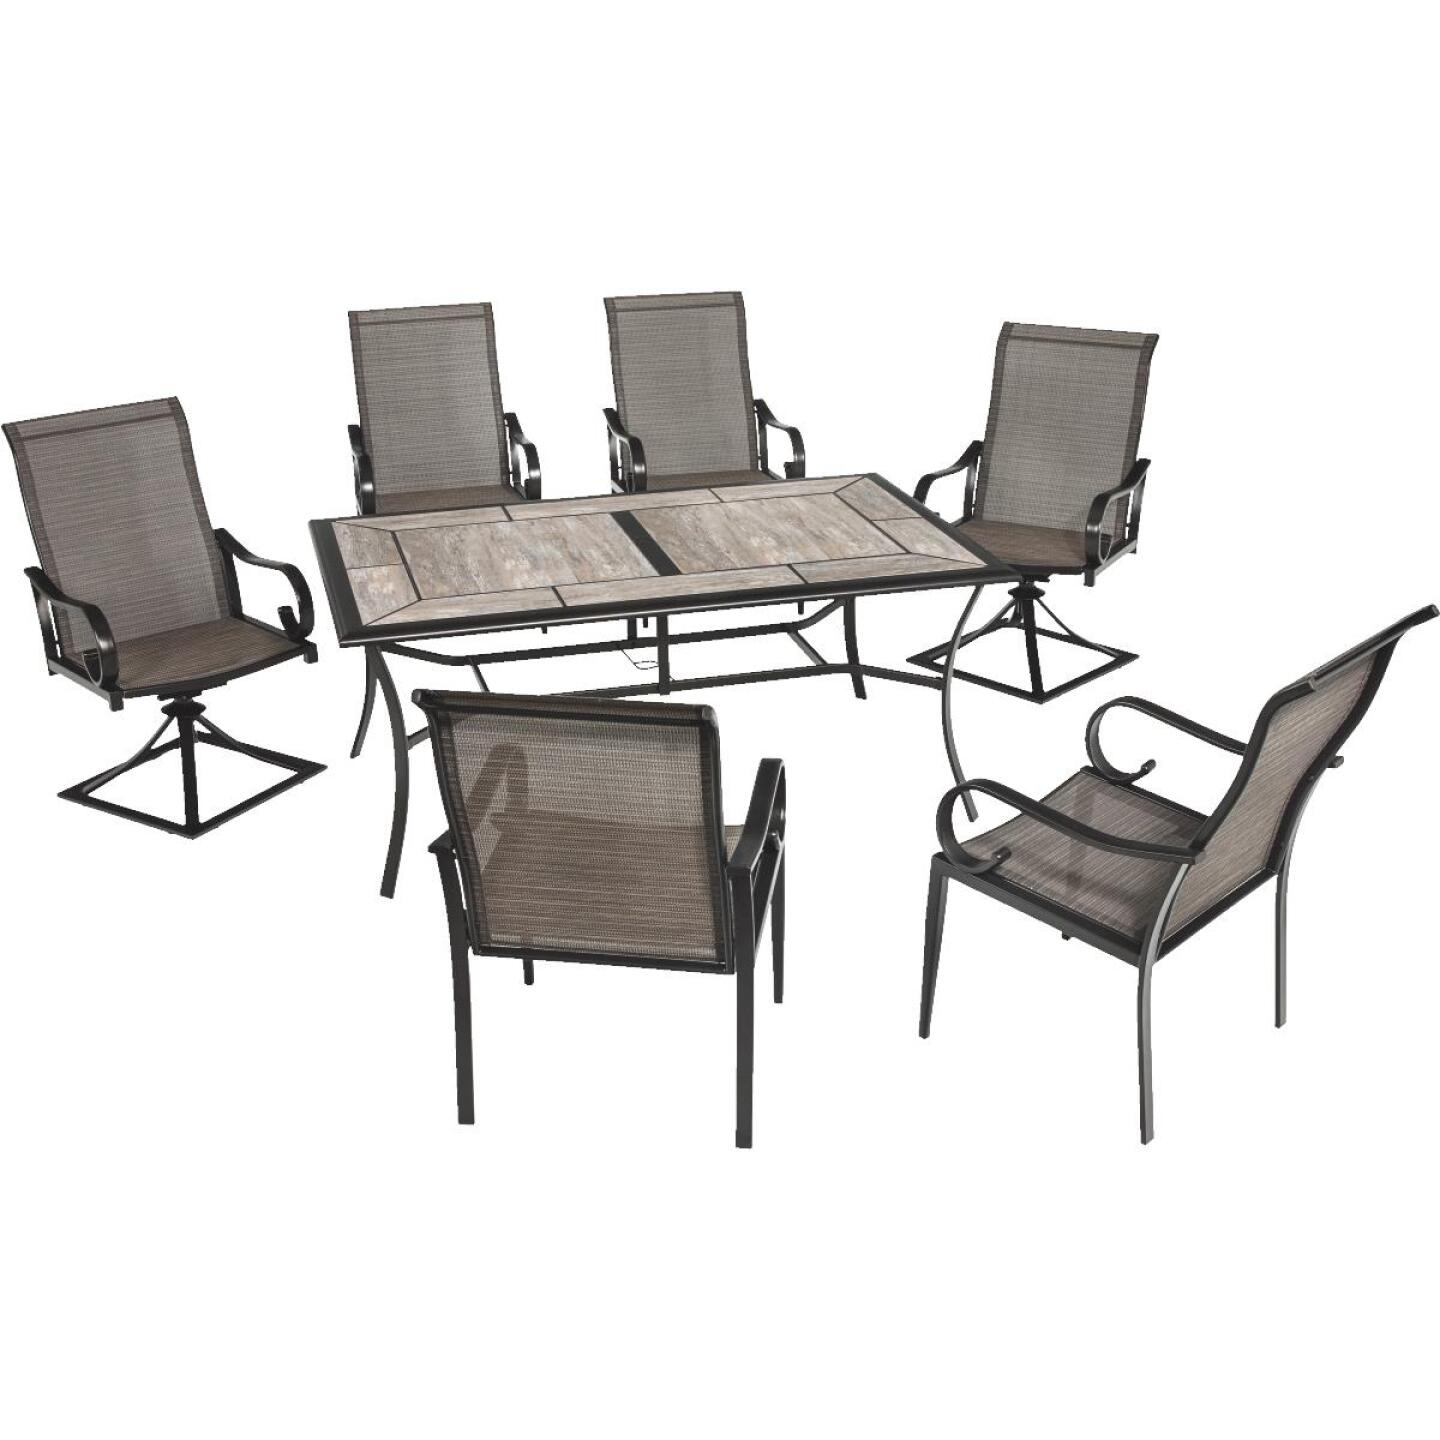 Outdoor Expressions Berkshire 7-Piece Dining Set Image 34